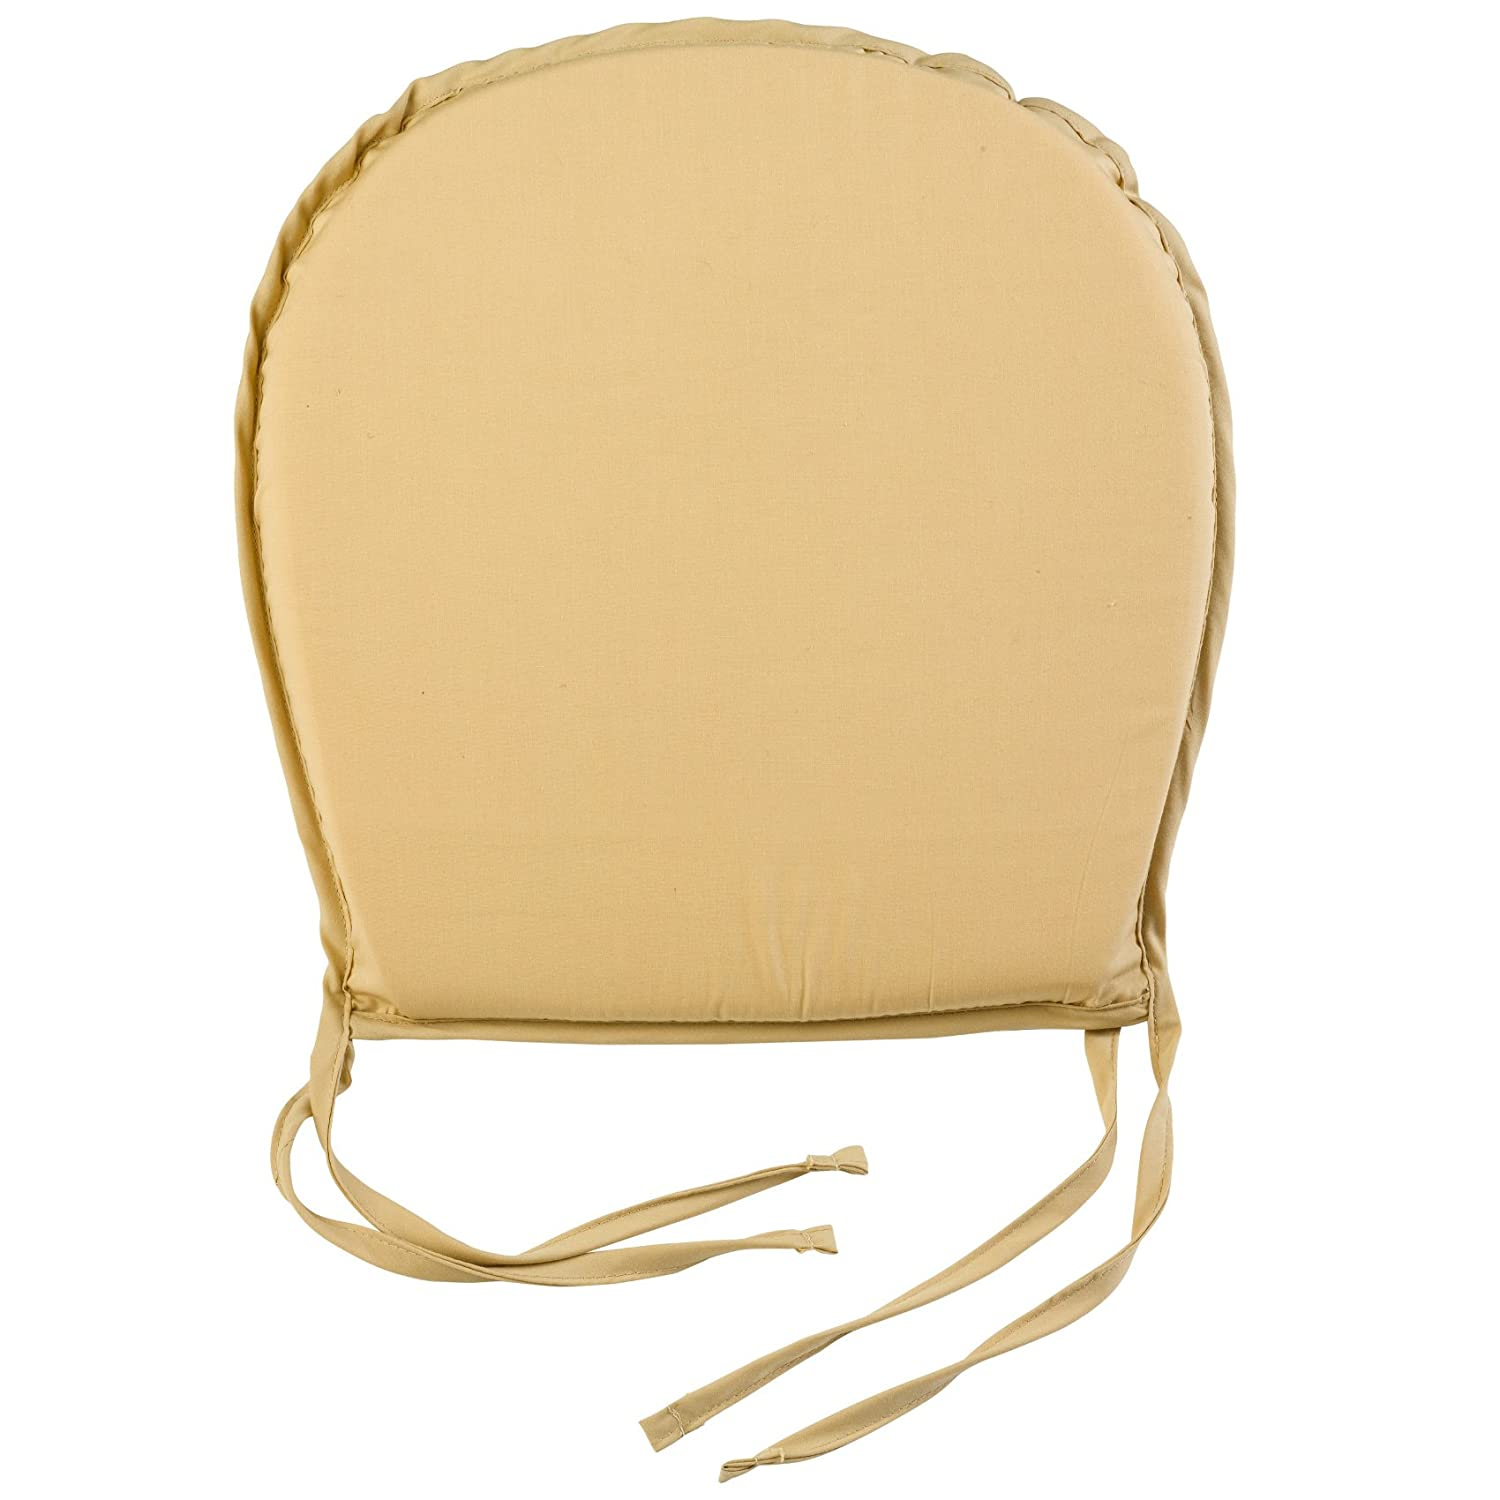 Plain Round Seat Pad Outdoor Garden Dining Kitchen Chair Cushion